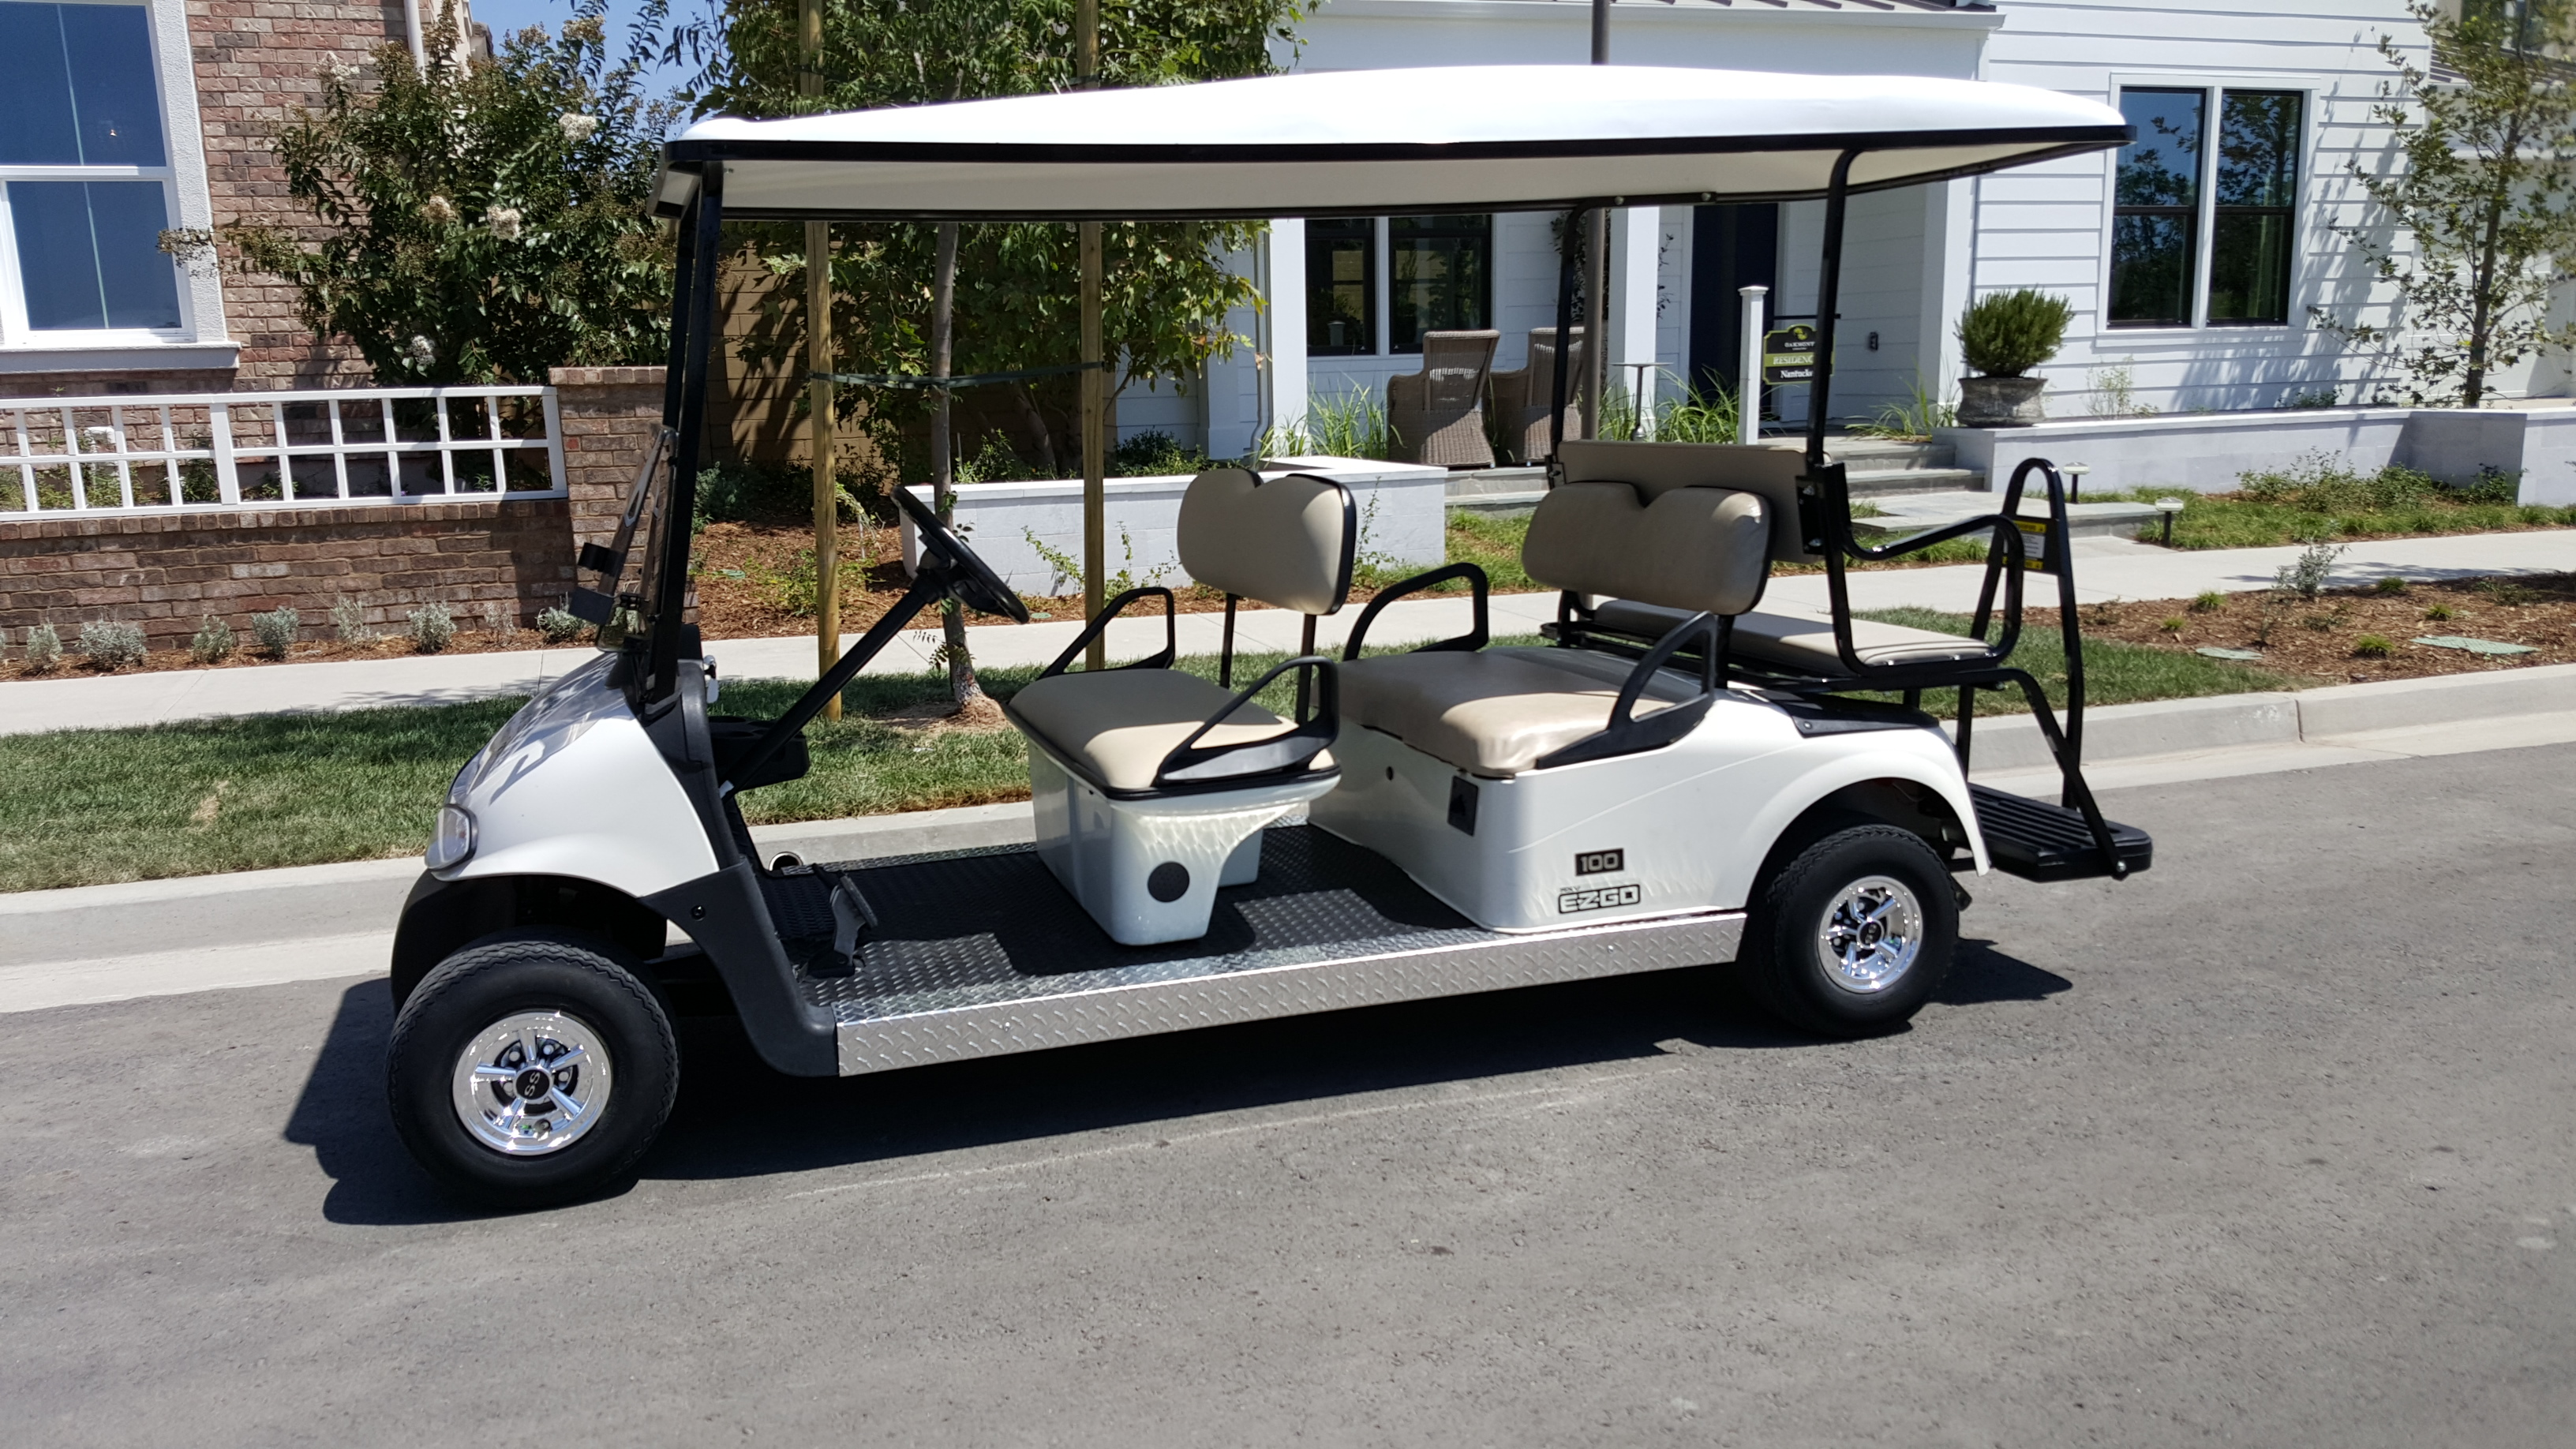 6 Passenger Golf Cart Rental